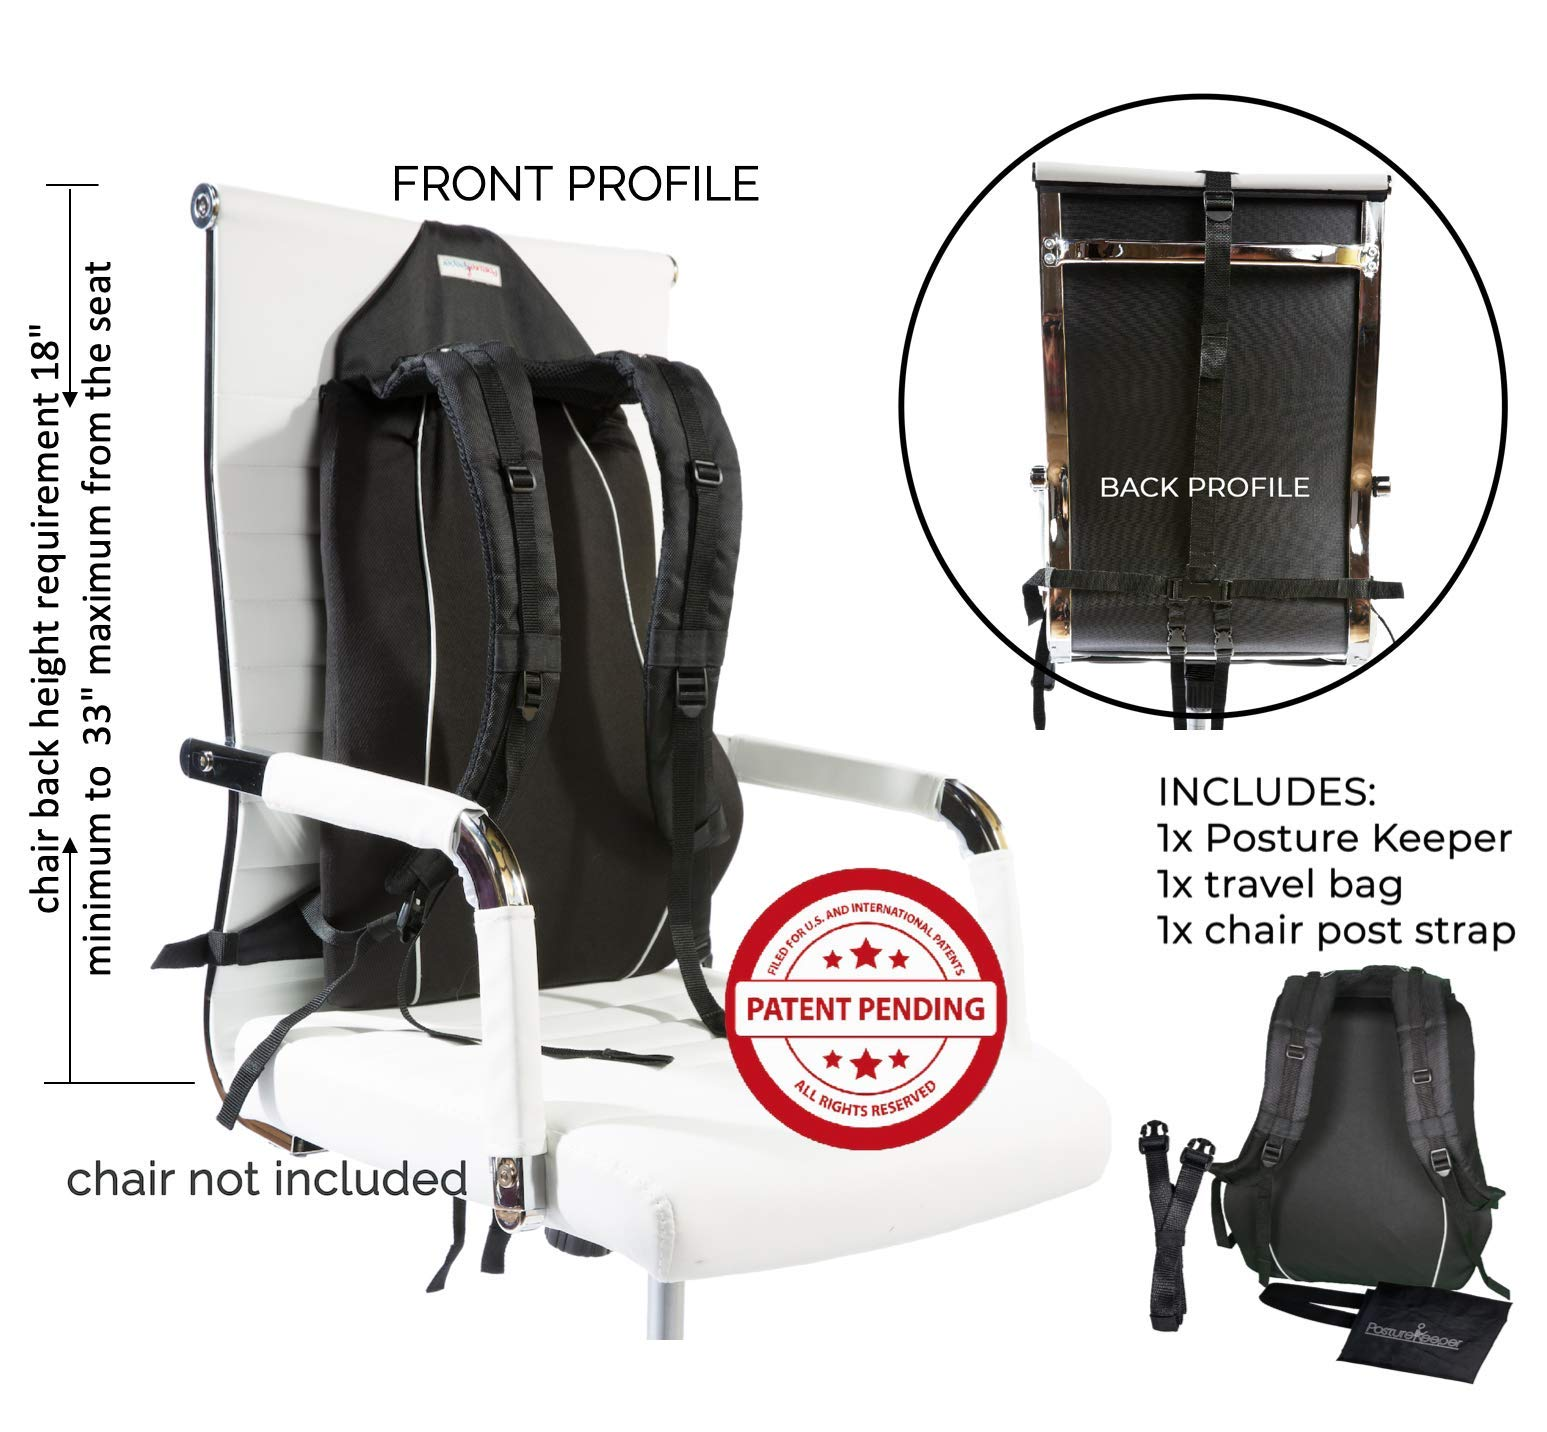 Posture Keeper - 3 in 1 Posture Corrector Device, Trainer, Lumbar Back Support System for Men & Women, Improve Your Sitting Posture, Relieve Back, Shoulders & Forward Neck Pain - New Invention